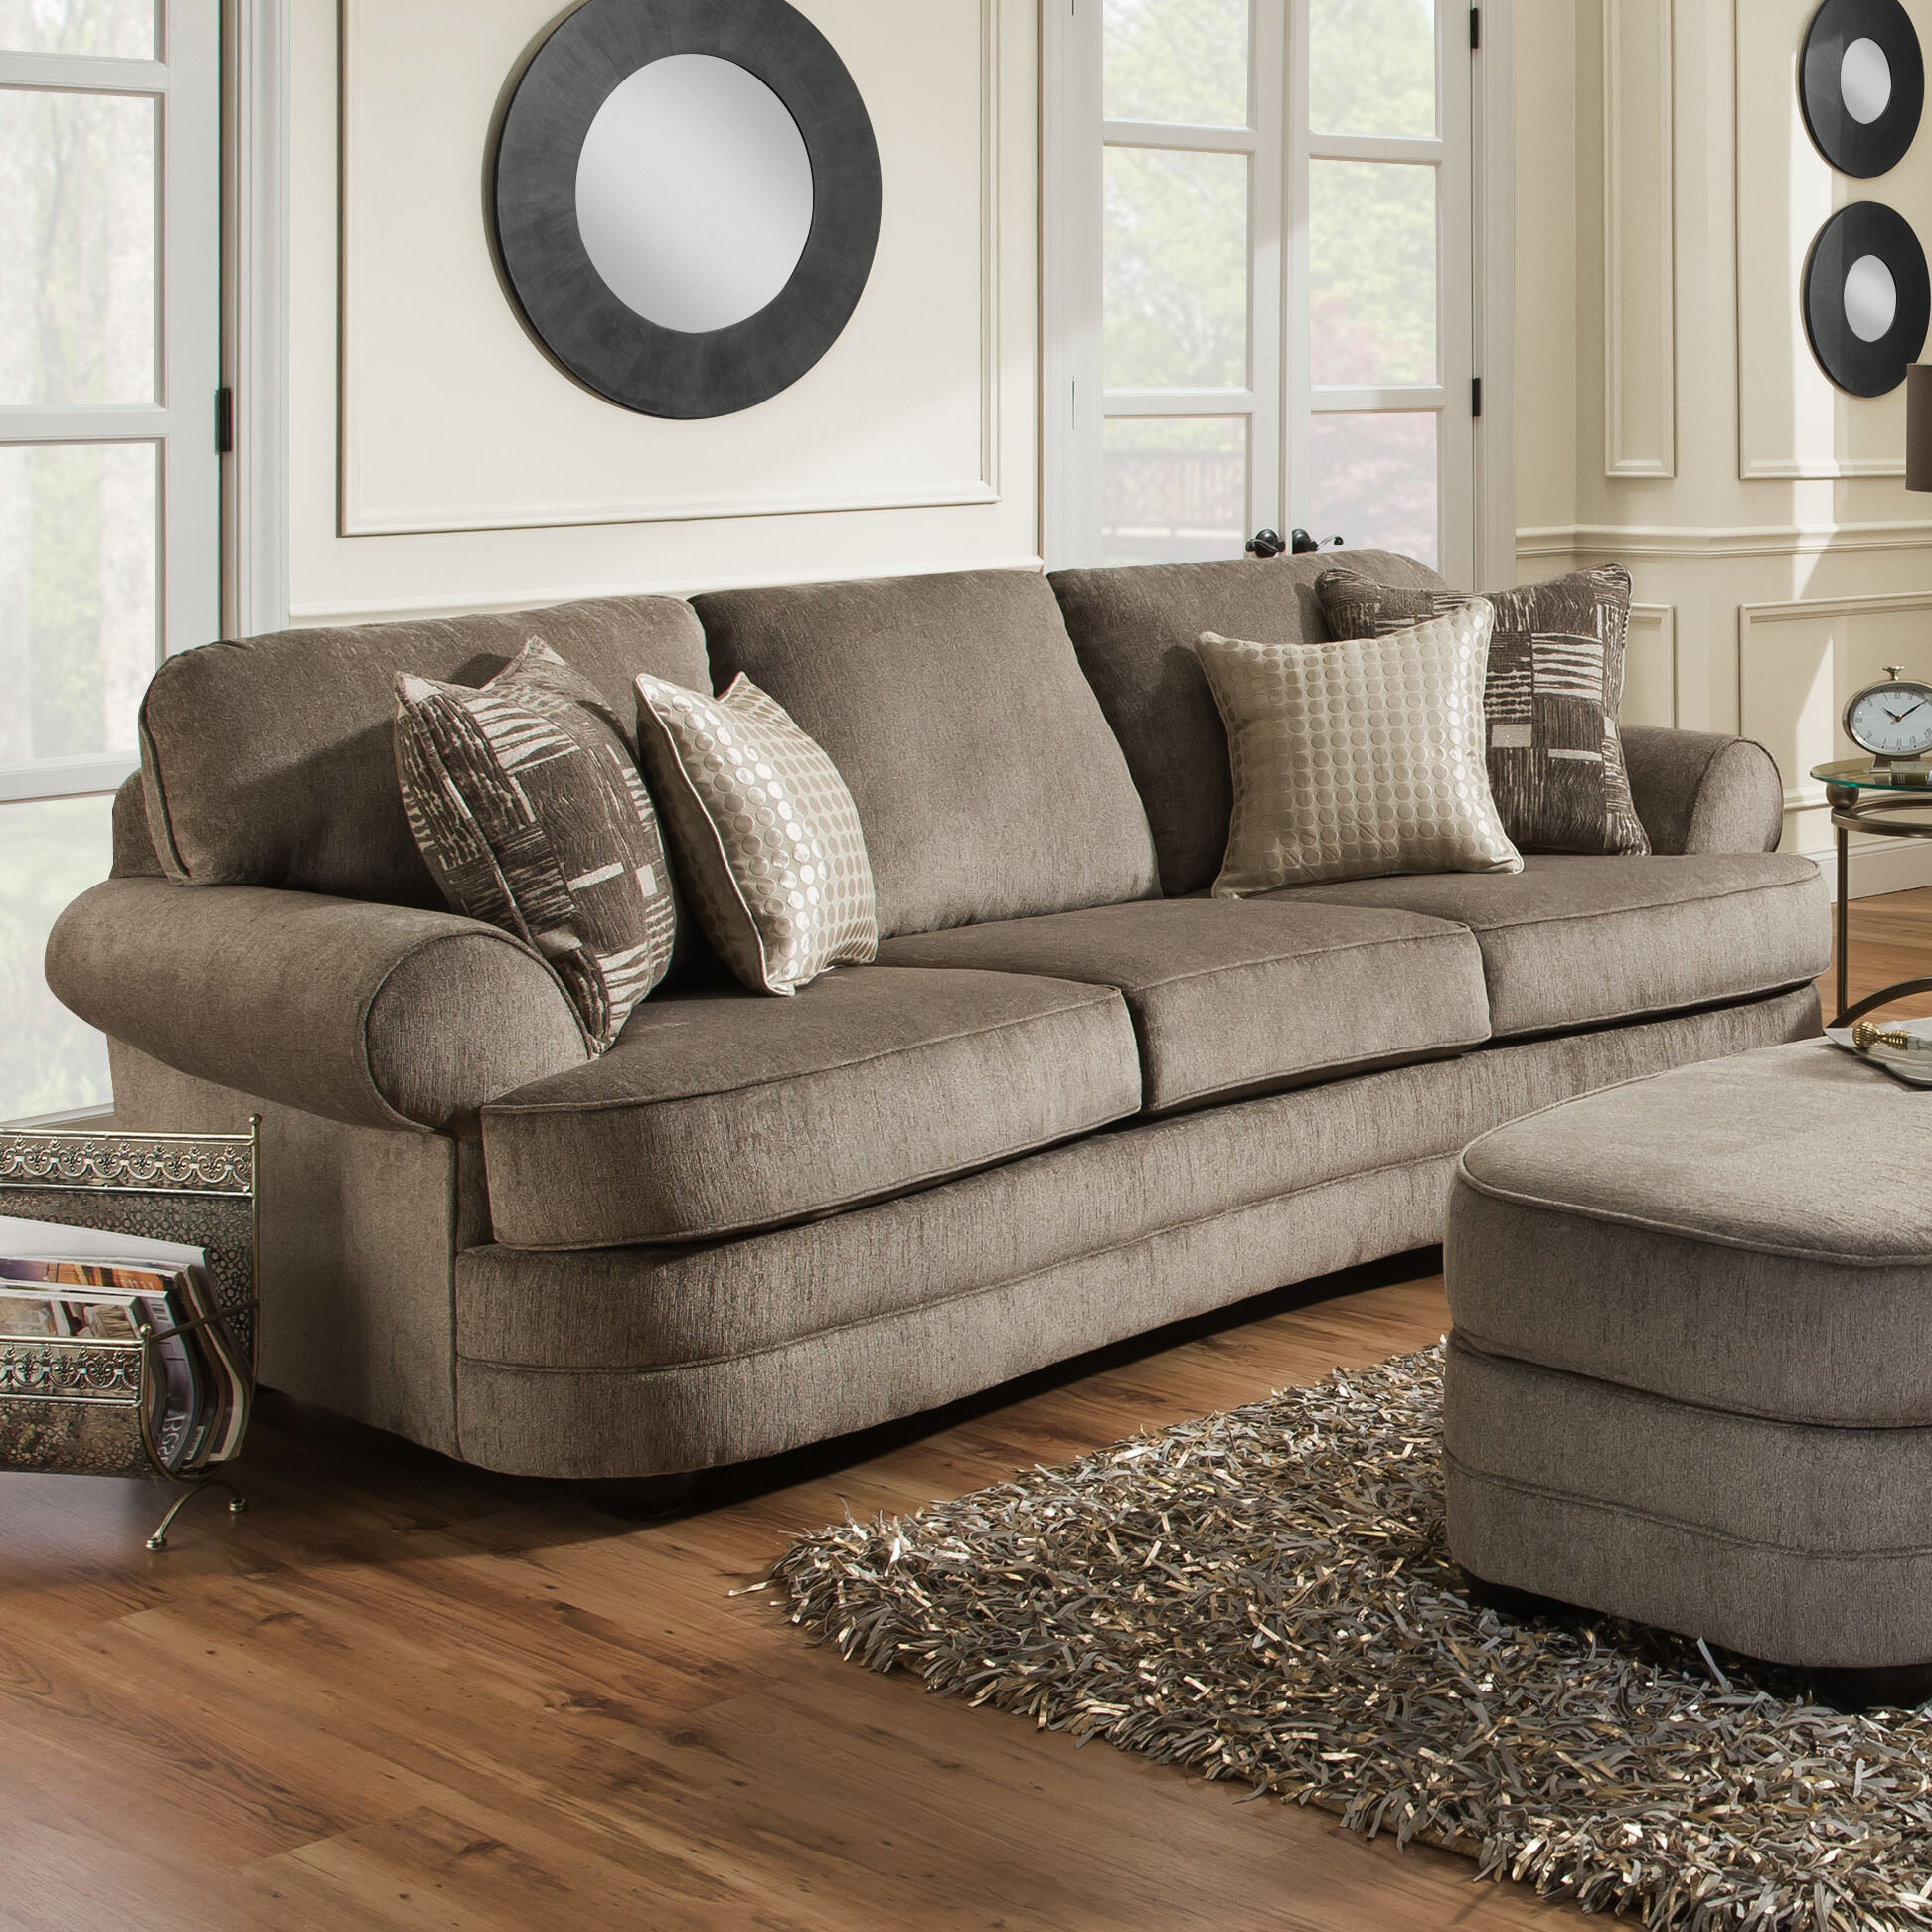 Simmons Living Room Furniture.  Simmons Upholstery Ashendon Sofa Reviews Birch Lane